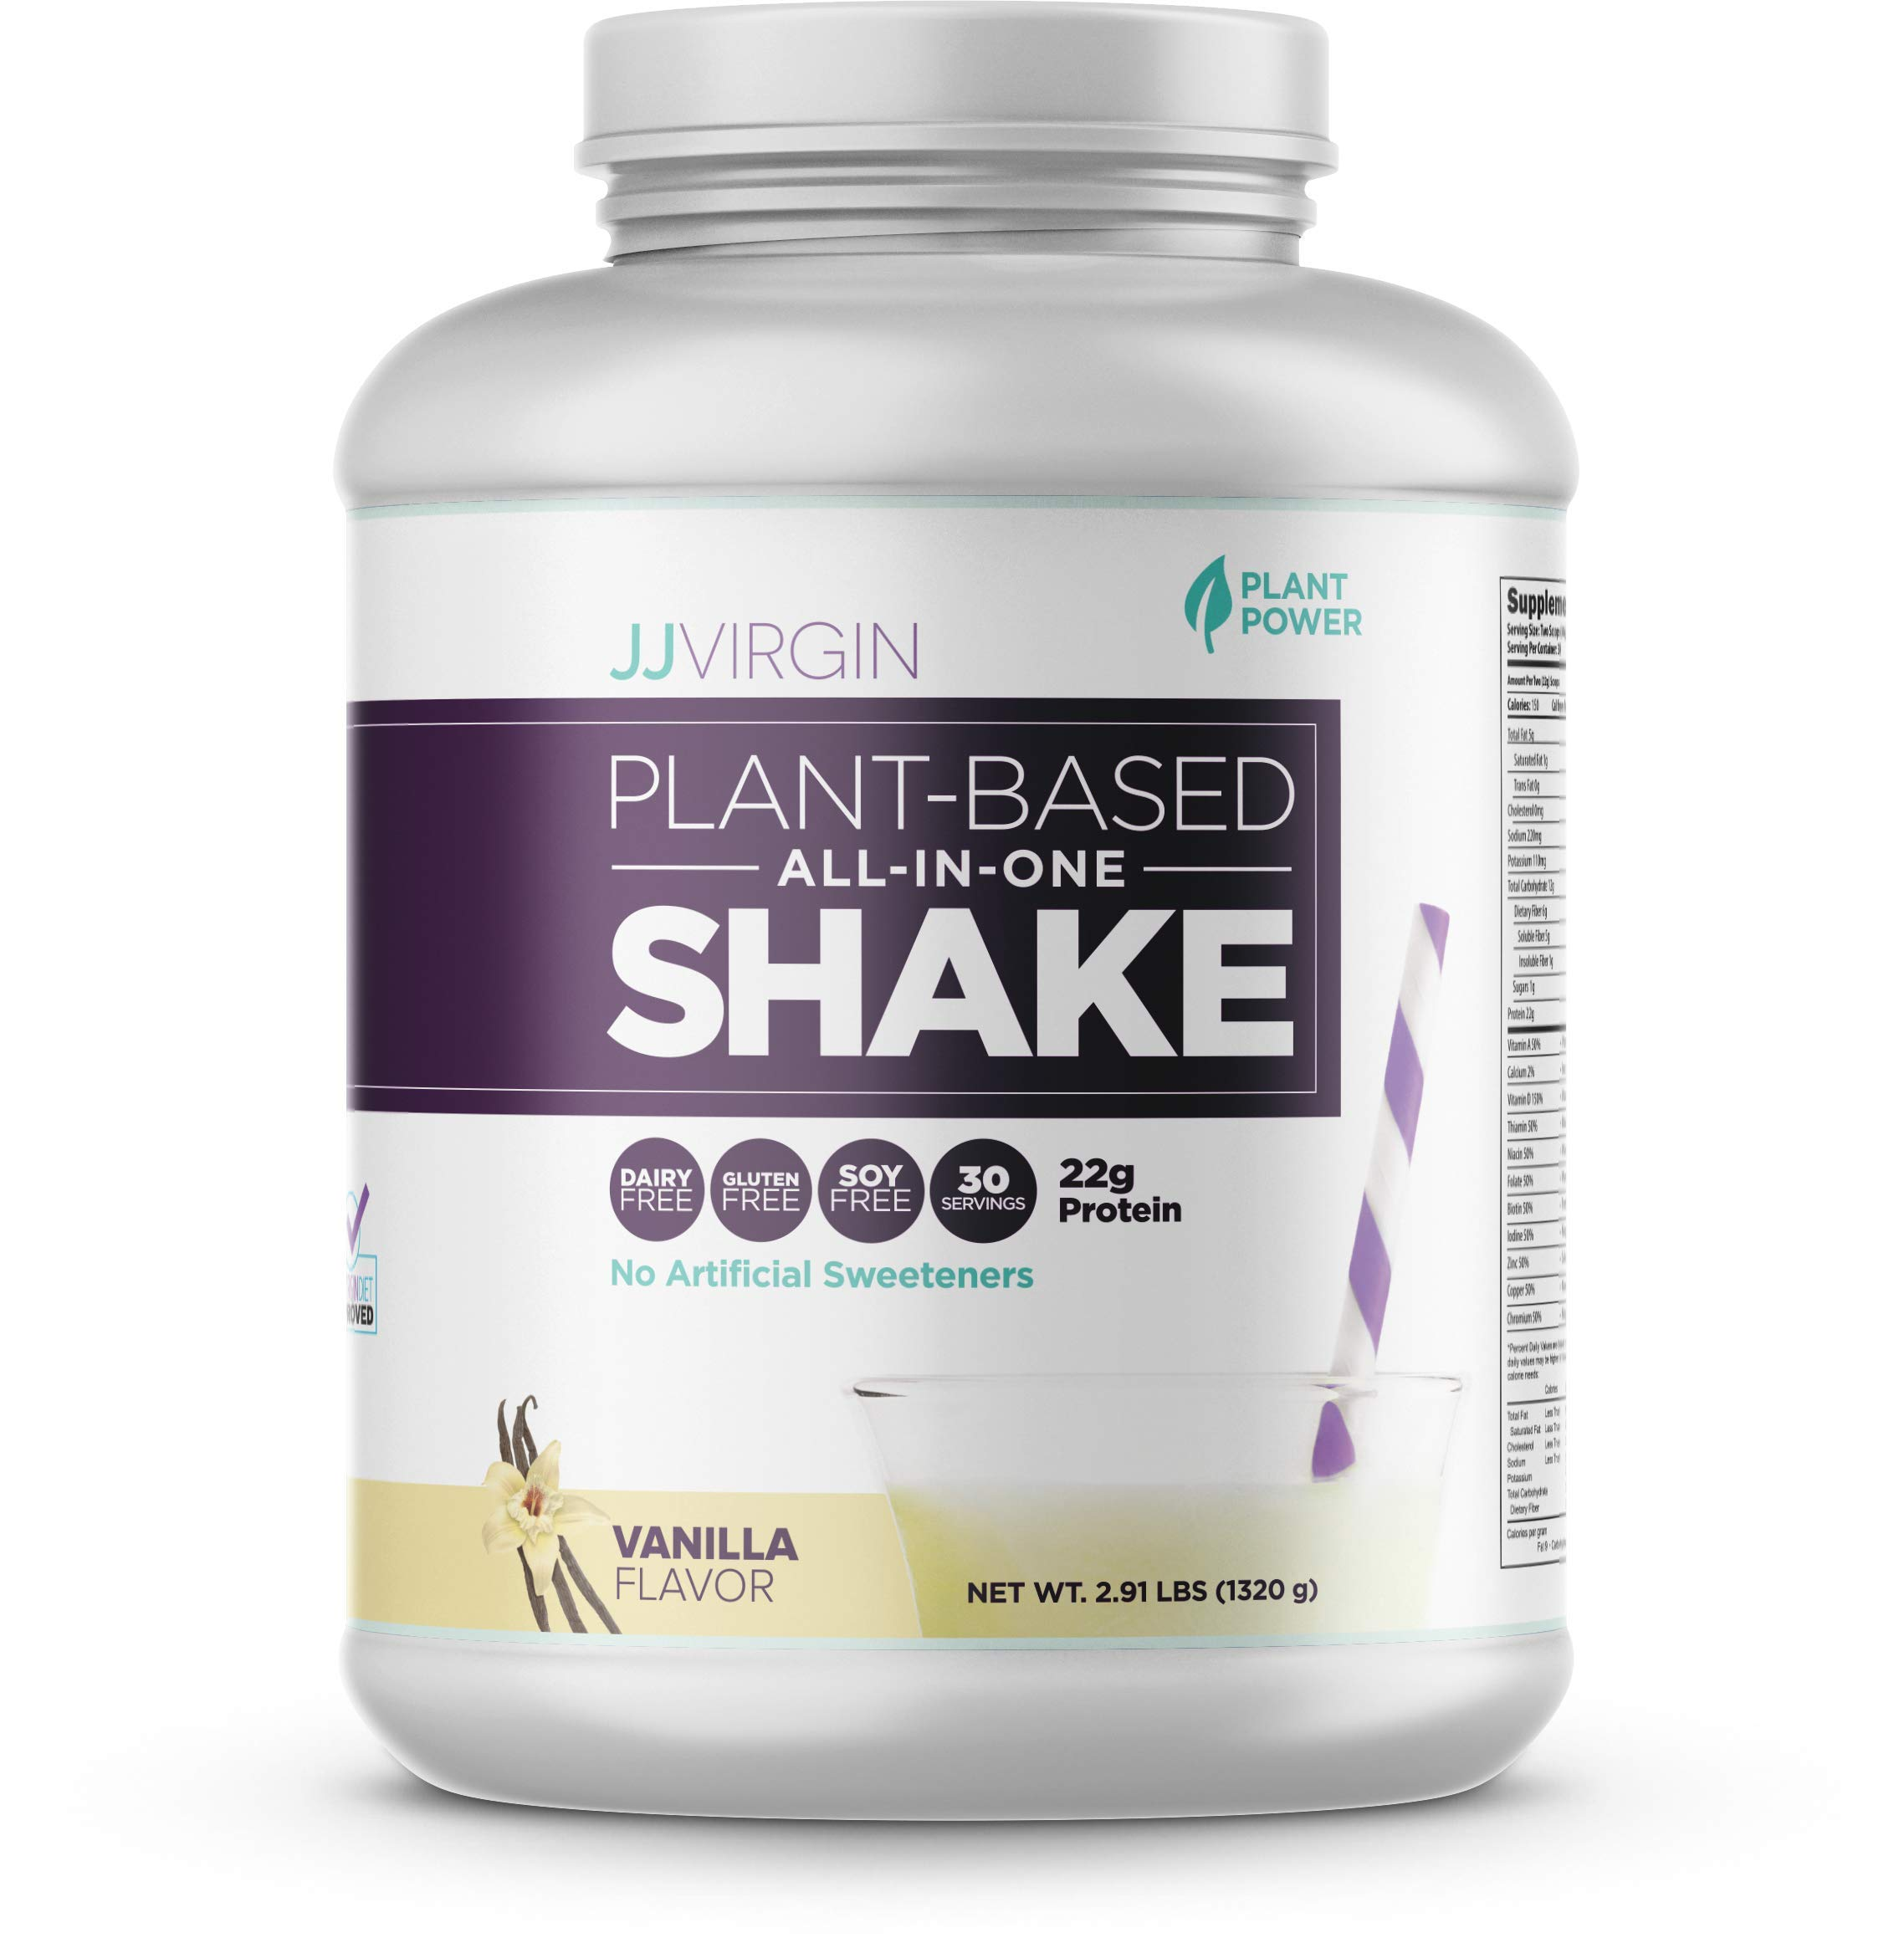 JJ Virgin Vanilla Plant-Based All-in-One Shake - Vegetarian-Friendly Protein Powder (30 Servings, 2.91 Pounds)